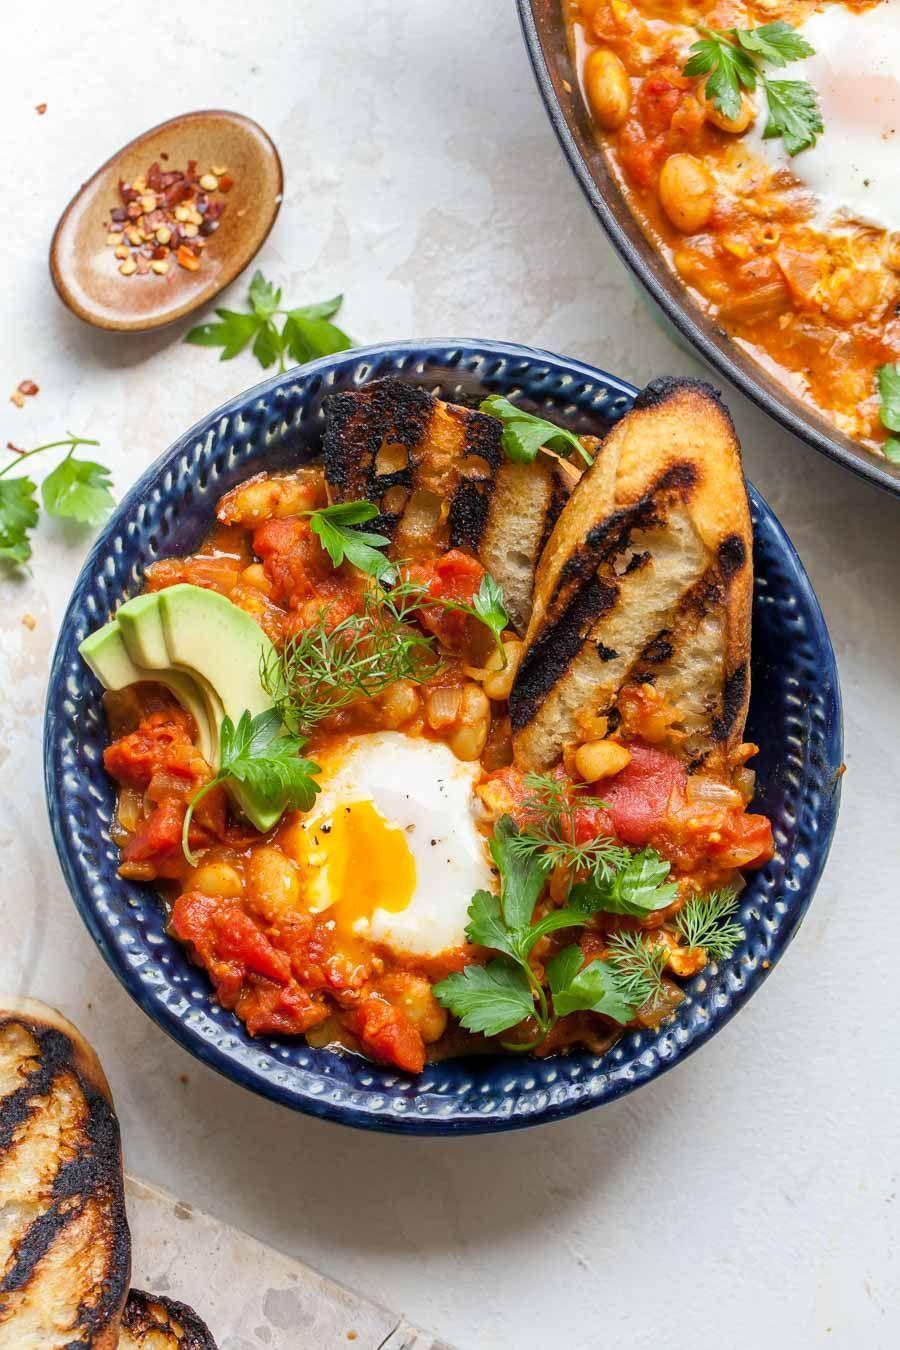 """<p>It's all the classic elements of a shakshuka, but overhauled for a single breakfast for one. This vegetarian recipe is a great brunch option on the weekends, too.</p><p><a href=""""https://dishingouthealth.com/tomato-curry-poached-eggs/"""" rel=""""nofollow noopener"""" target=""""_blank"""" data-ylk=""""slk:Get the recipe from Dishing Out Health »"""" class=""""link rapid-noclick-resp""""><em>Get the recipe from Dishing Out Health »</em></a></p><p><strong>RELATED</strong>: <a href=""""https://www.goodhousekeeping.com/food-recipes/healthy/g908/vegetarian-recipes/"""" rel=""""nofollow noopener"""" target=""""_blank"""" data-ylk=""""slk:50 Easy Vegetarian Recipes for the Whole Family"""" class=""""link rapid-noclick-resp"""">50 Easy Vegetarian Recipes for the Whole Family</a></p>"""